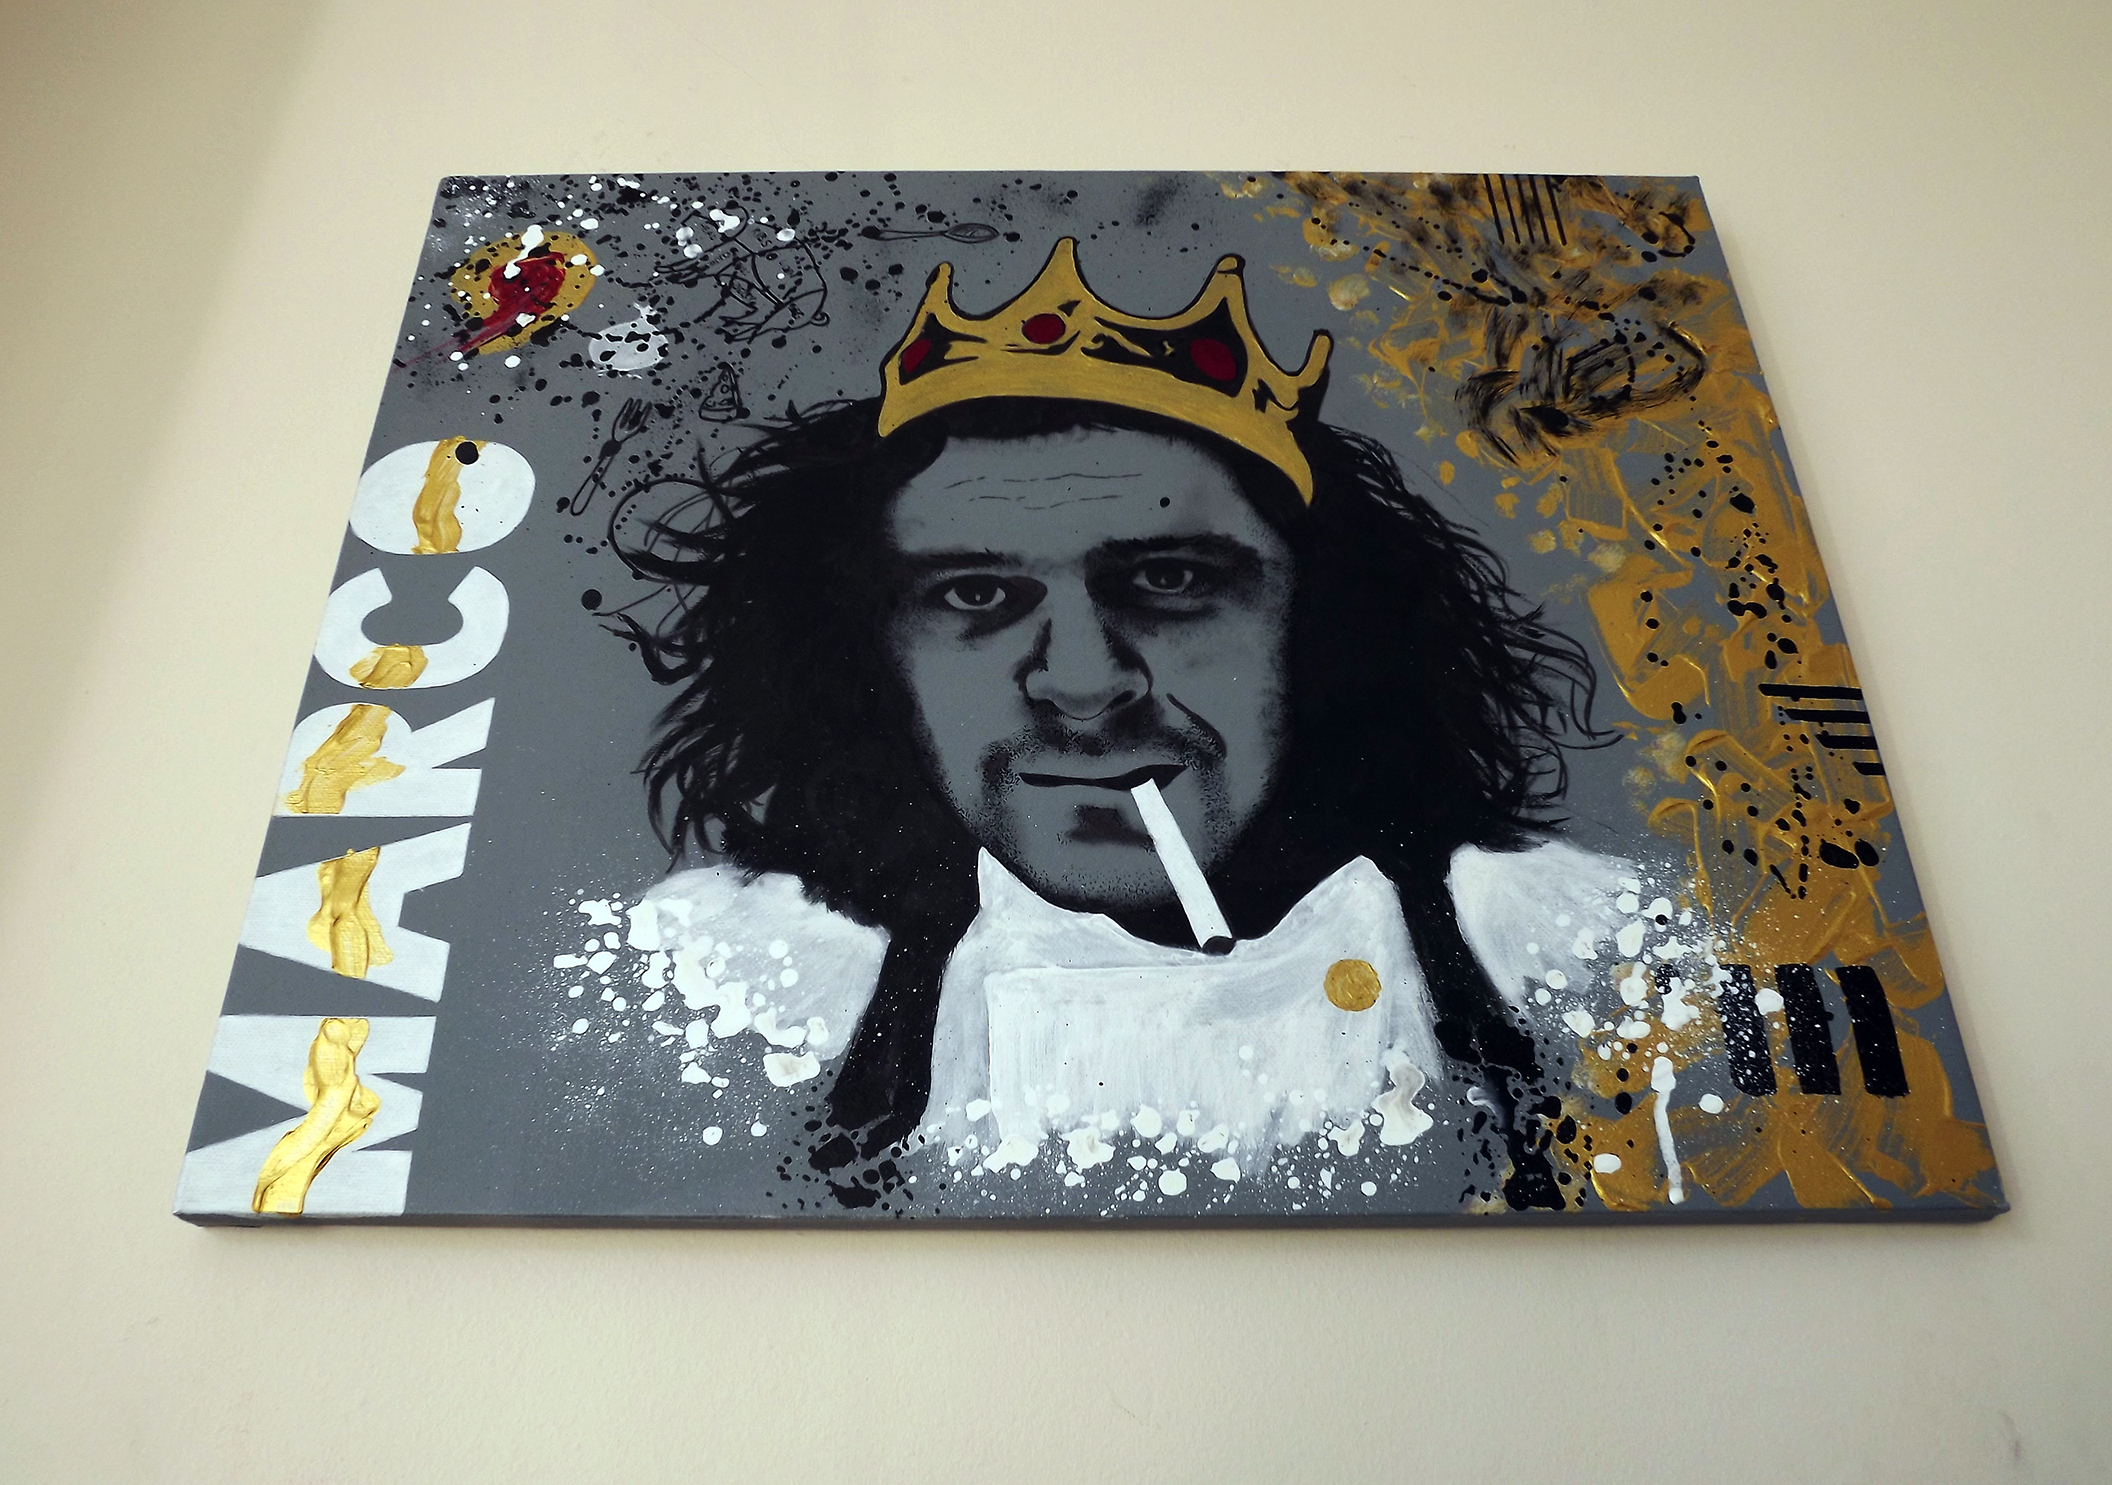 Marco Pierre White pop art portrait 3.jpg